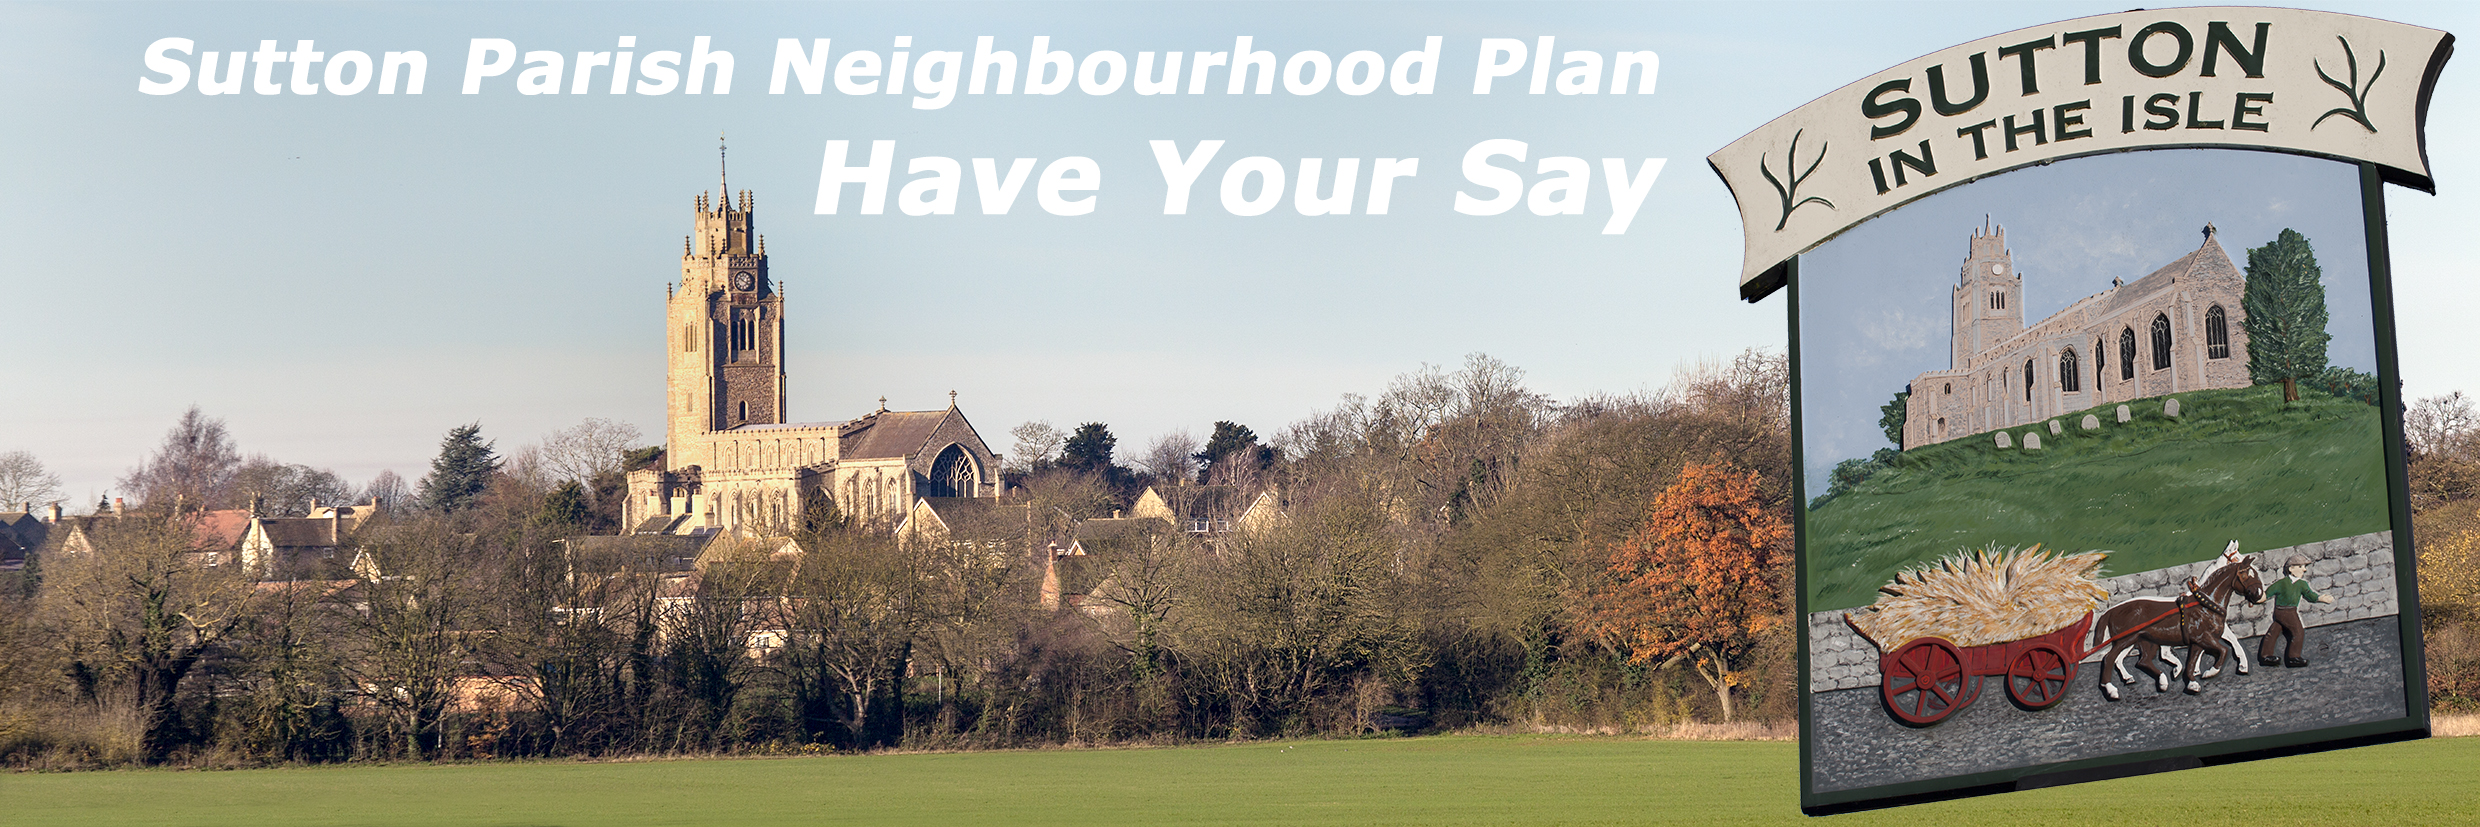 Sutton Neighbourhood Plan